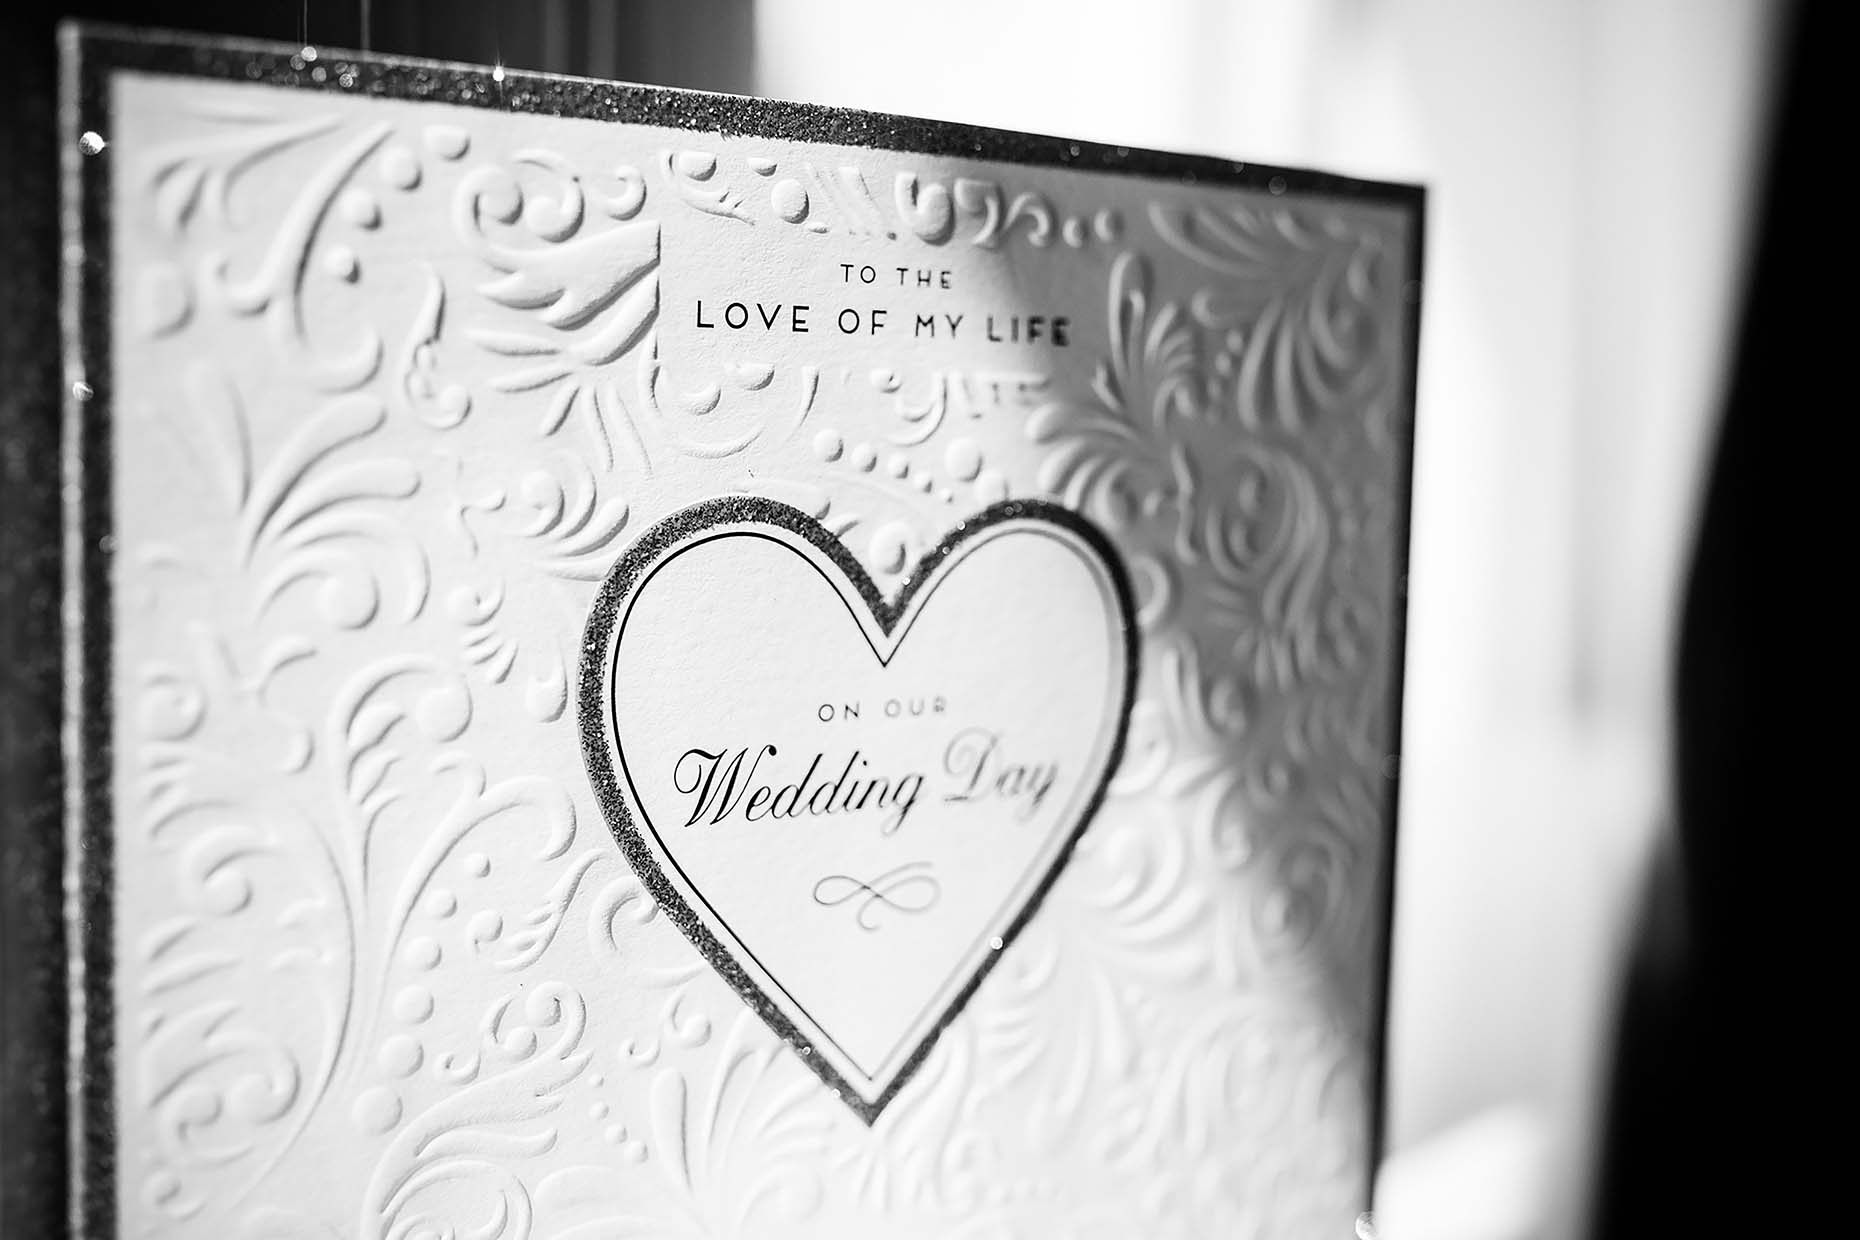 to-the-love-of-my-life-wedding-card-mono-details-25